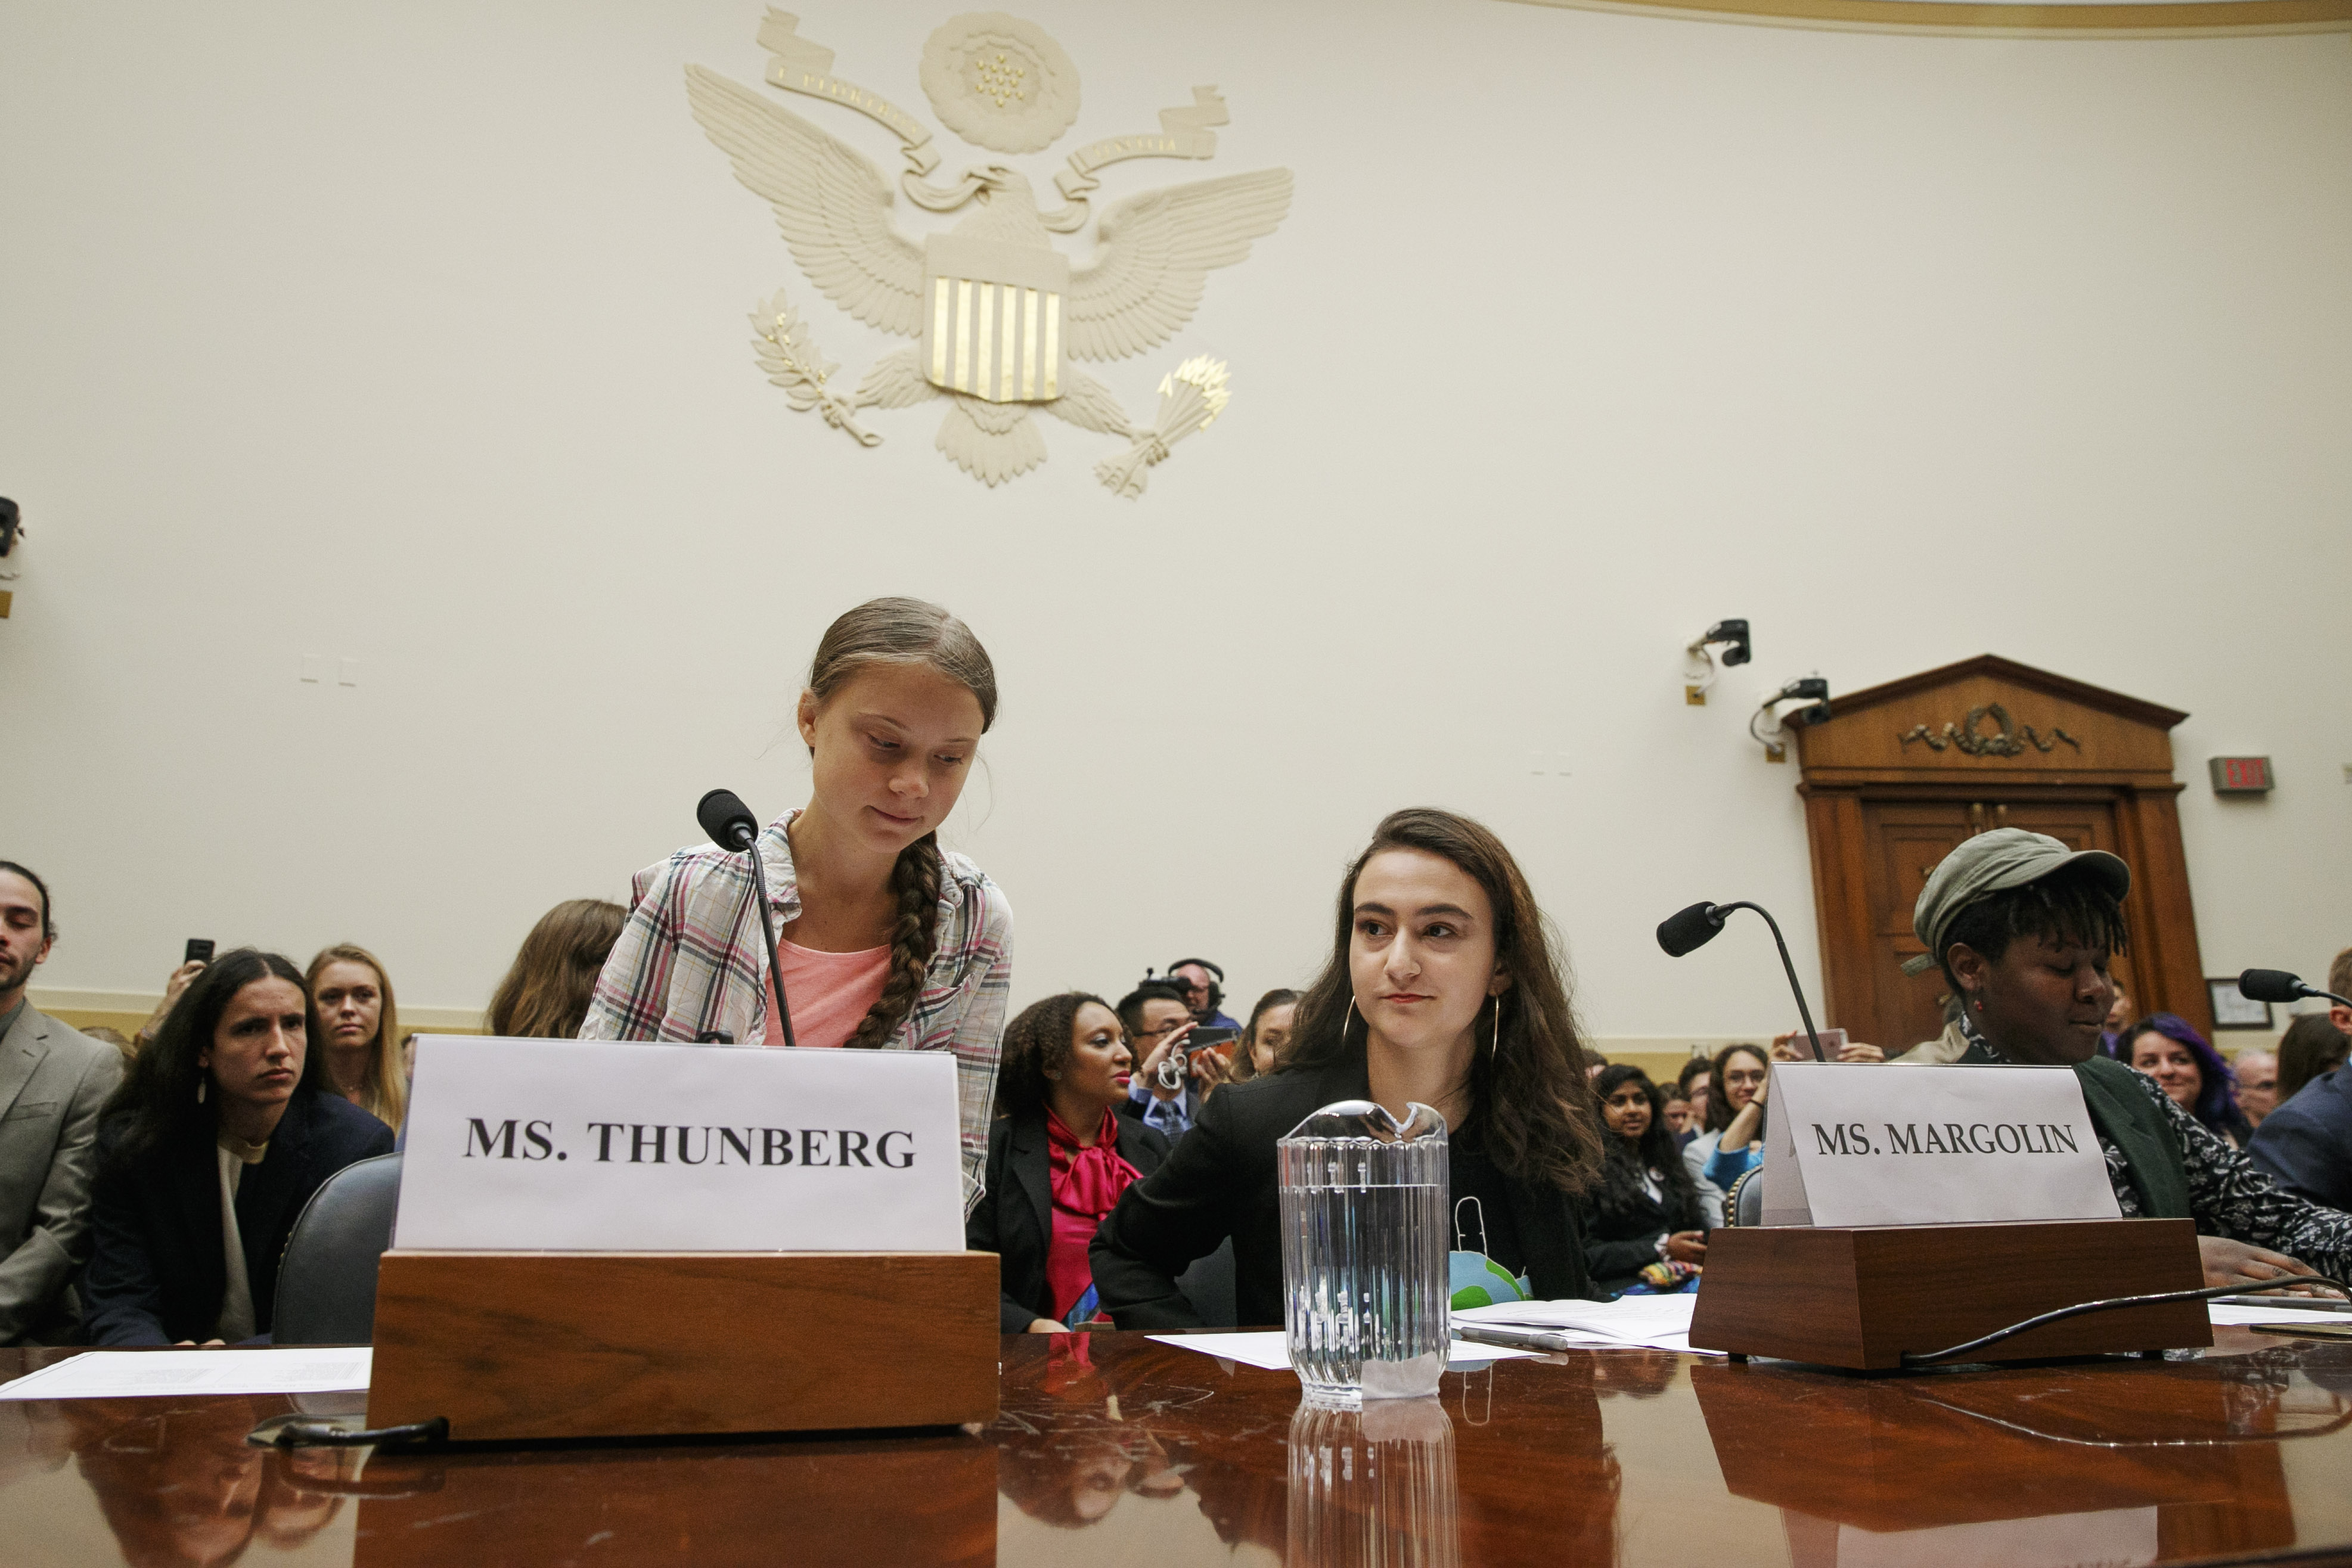 Greta Thunberg, Swedish teen climate activist, pitches lawmakers on Capitol Hill